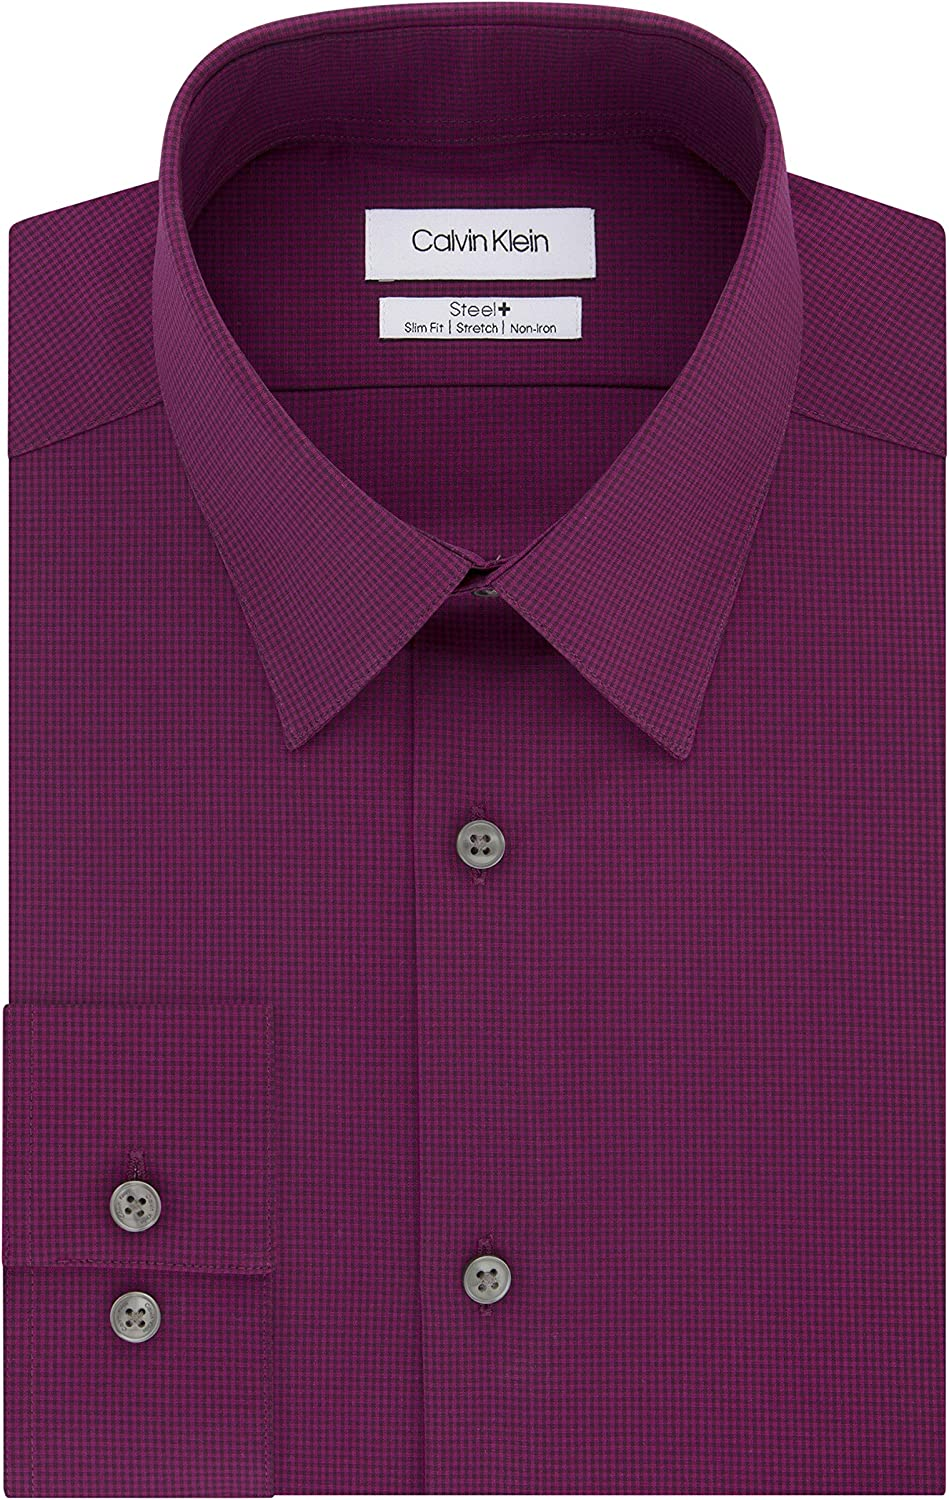 Calvin Klein Men's Dress Shirt Non Stretch Time sale Check Iron Challenge the lowest price Slim Fit